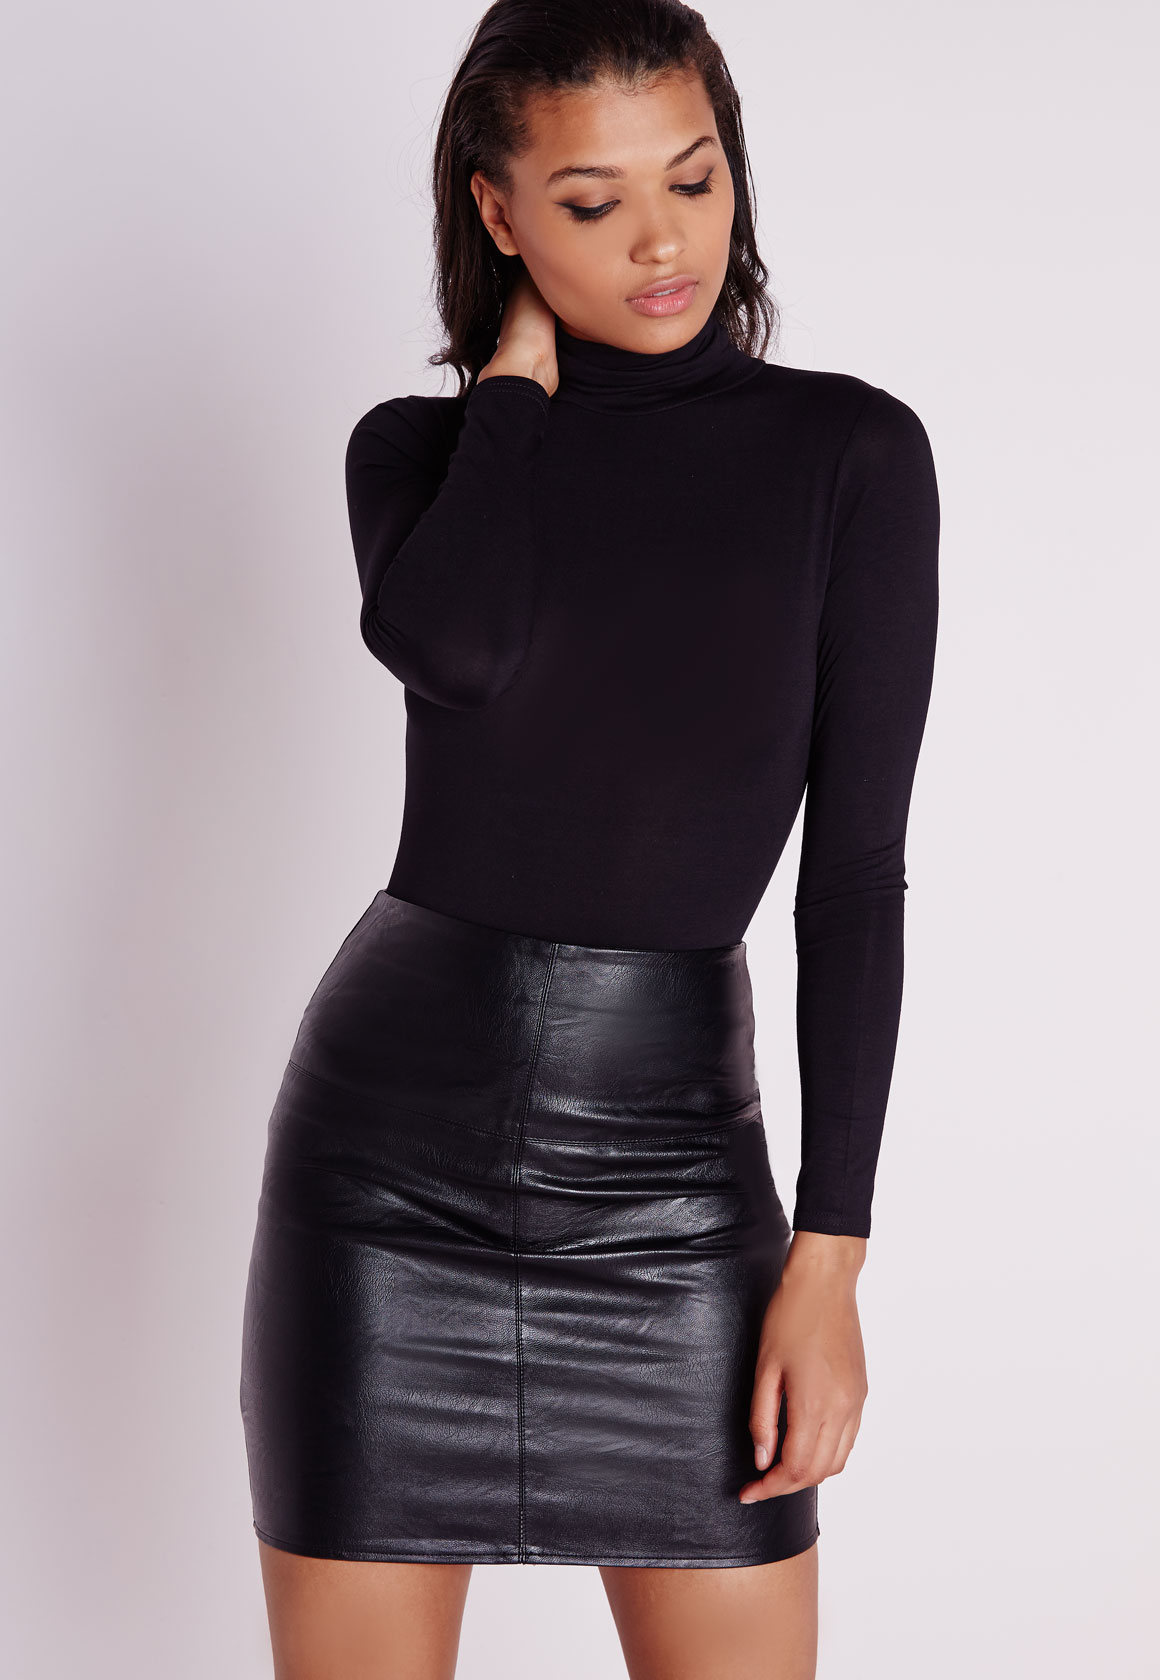 Missguided Tall Faux Leather Mini Skirt Black in Black | Lyst